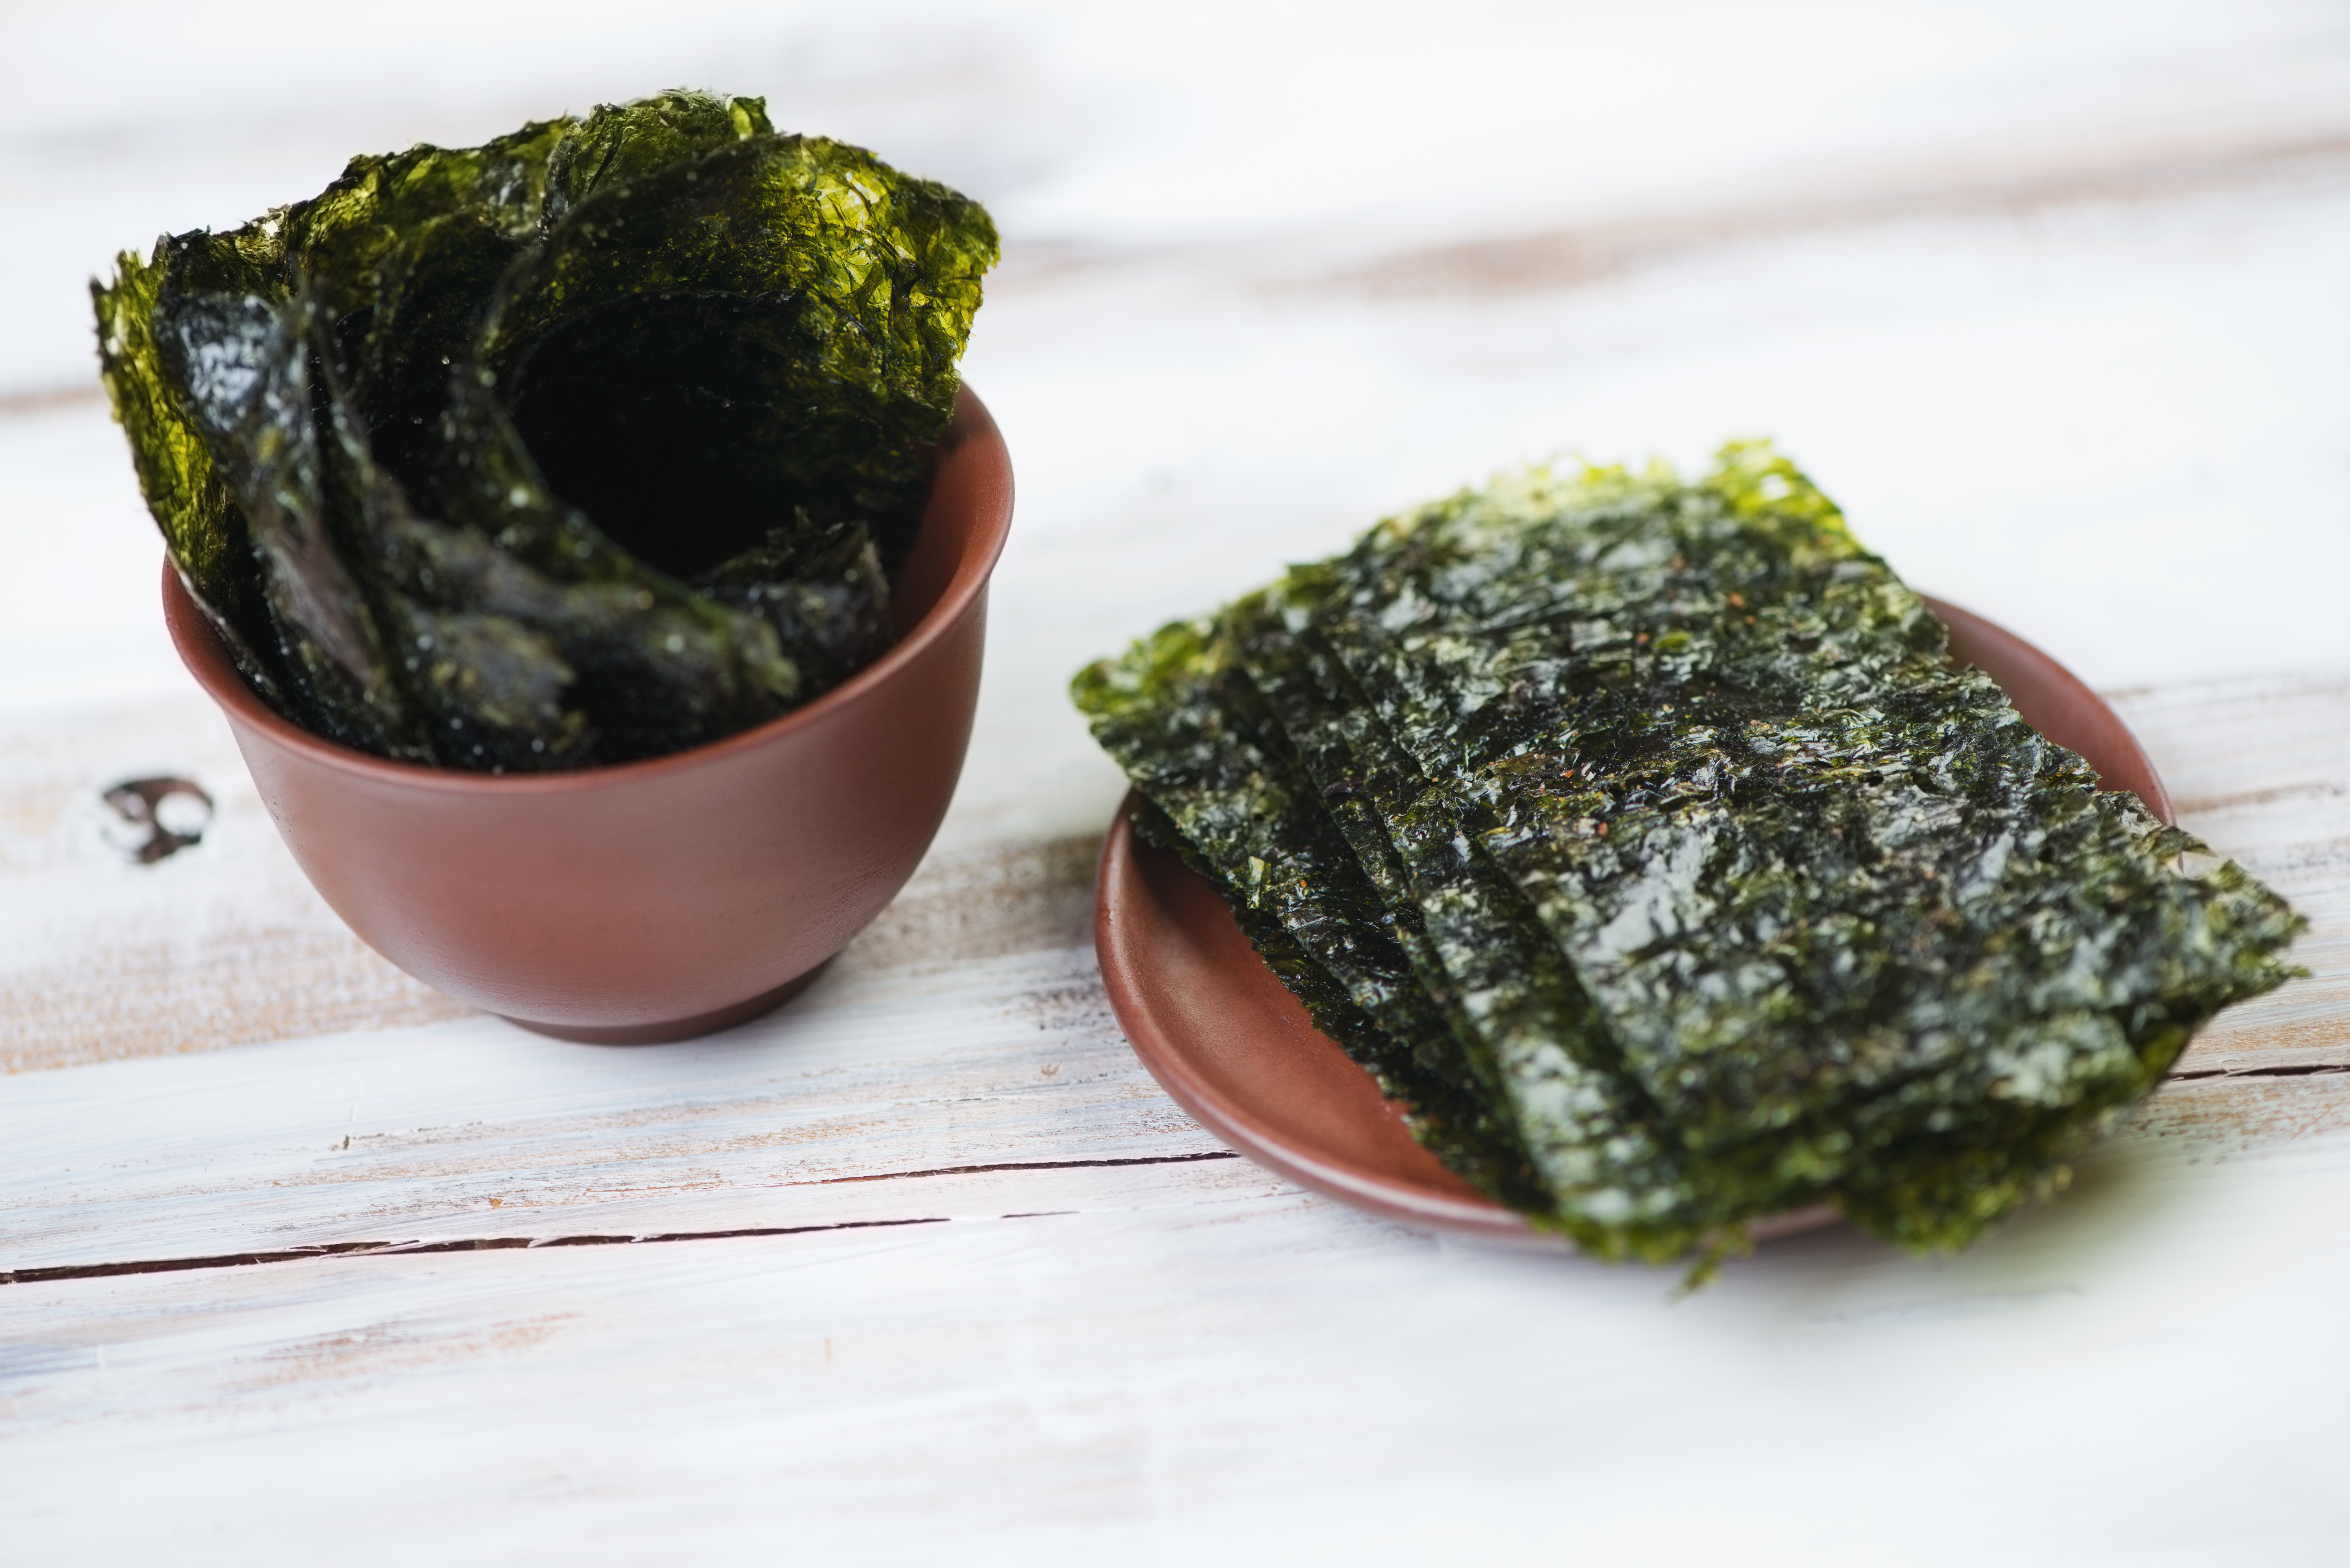 Seaweed: Super Sea Vegetables – Super Good For You!